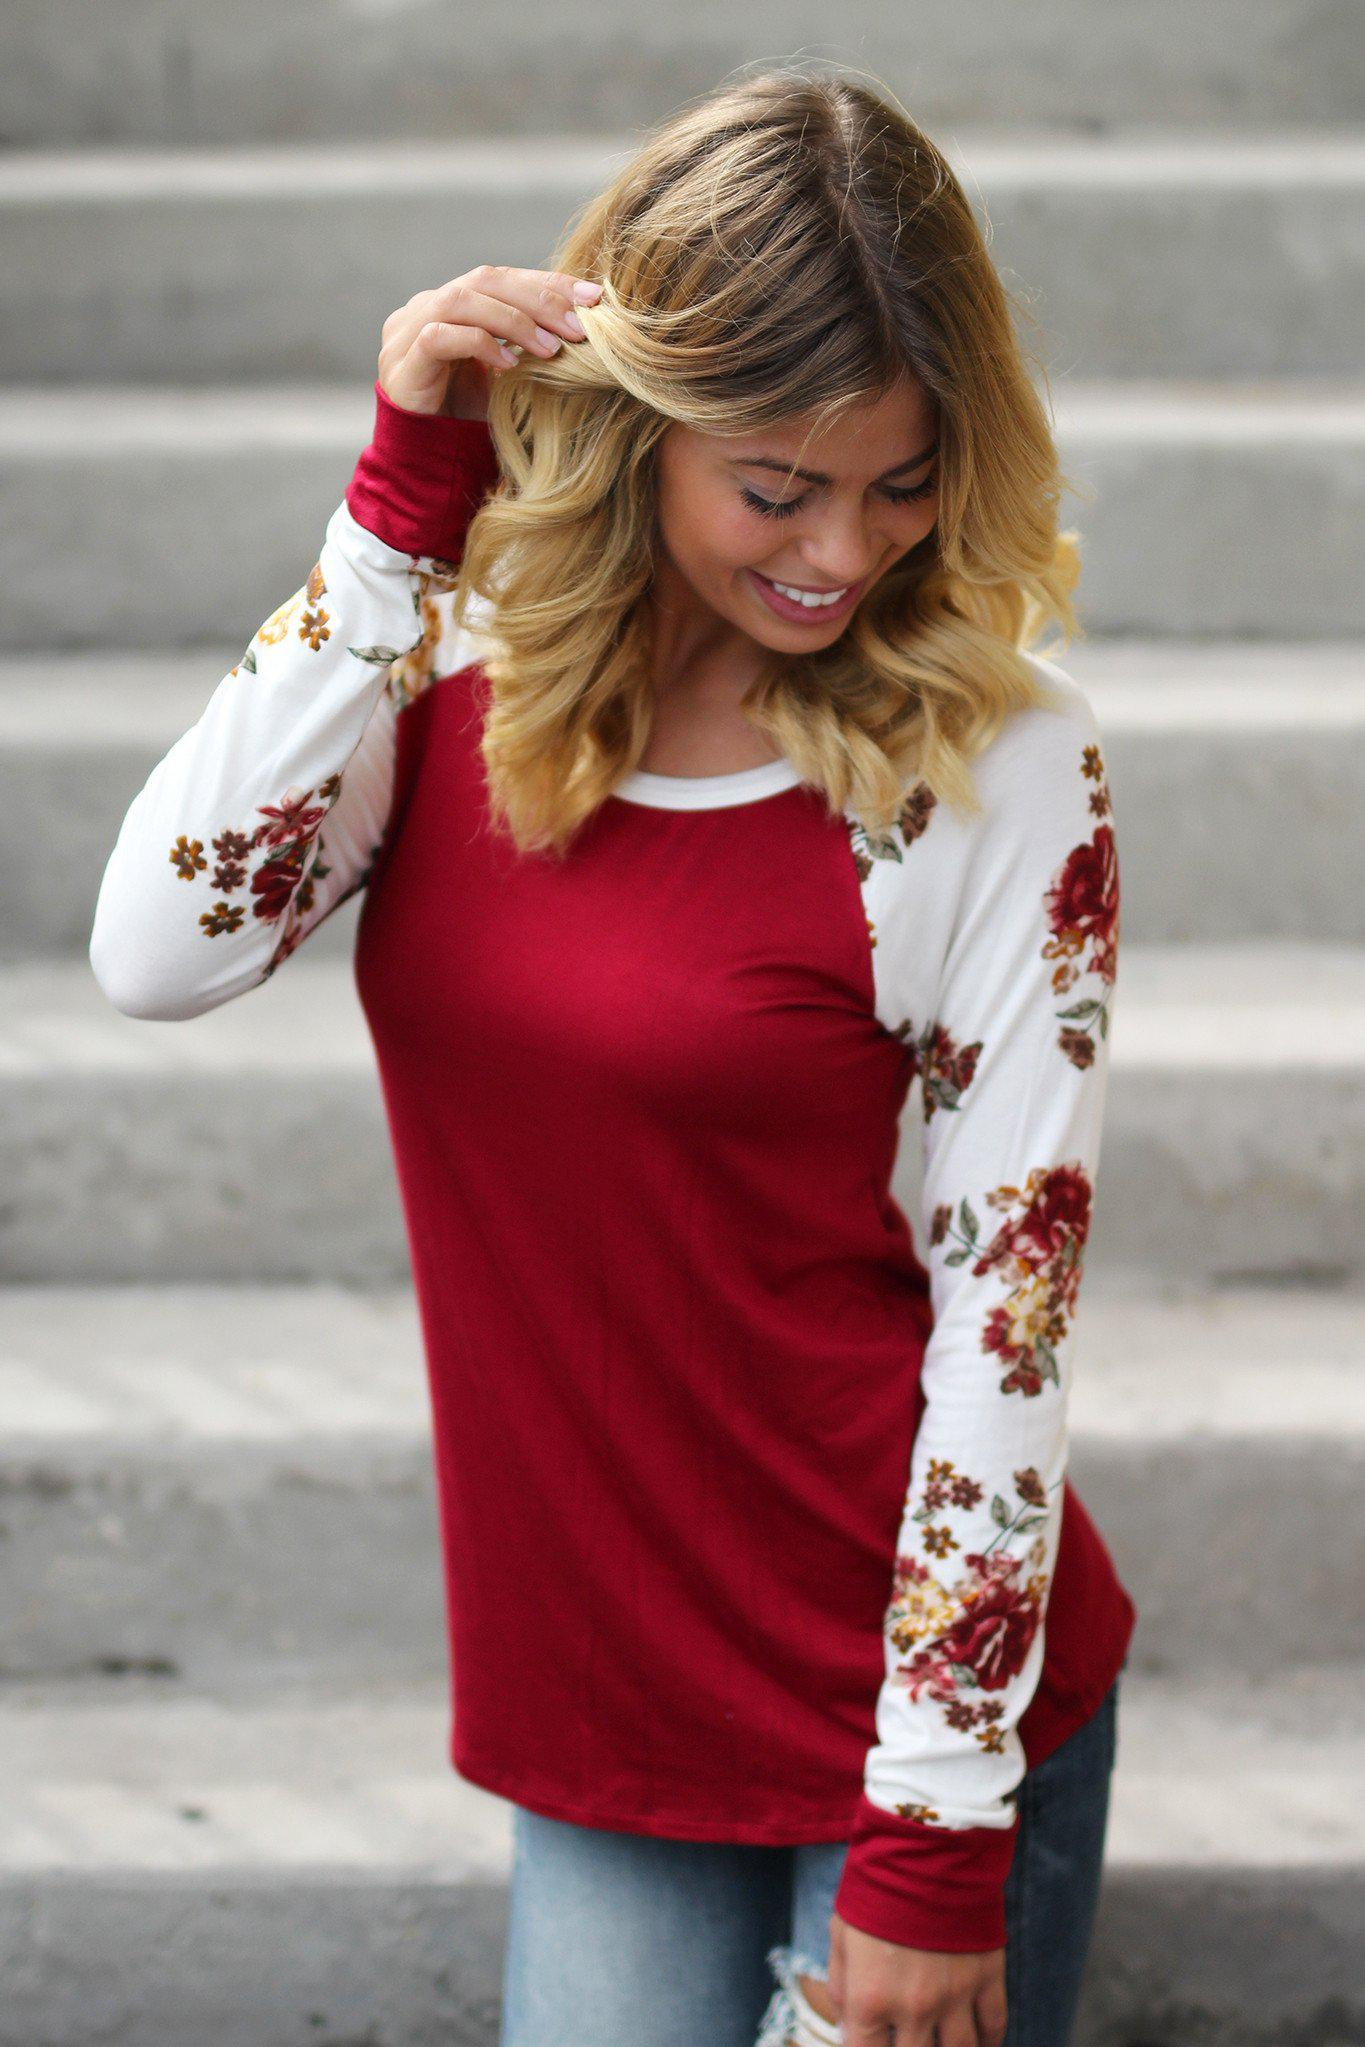 burgundy top with floral sleeves